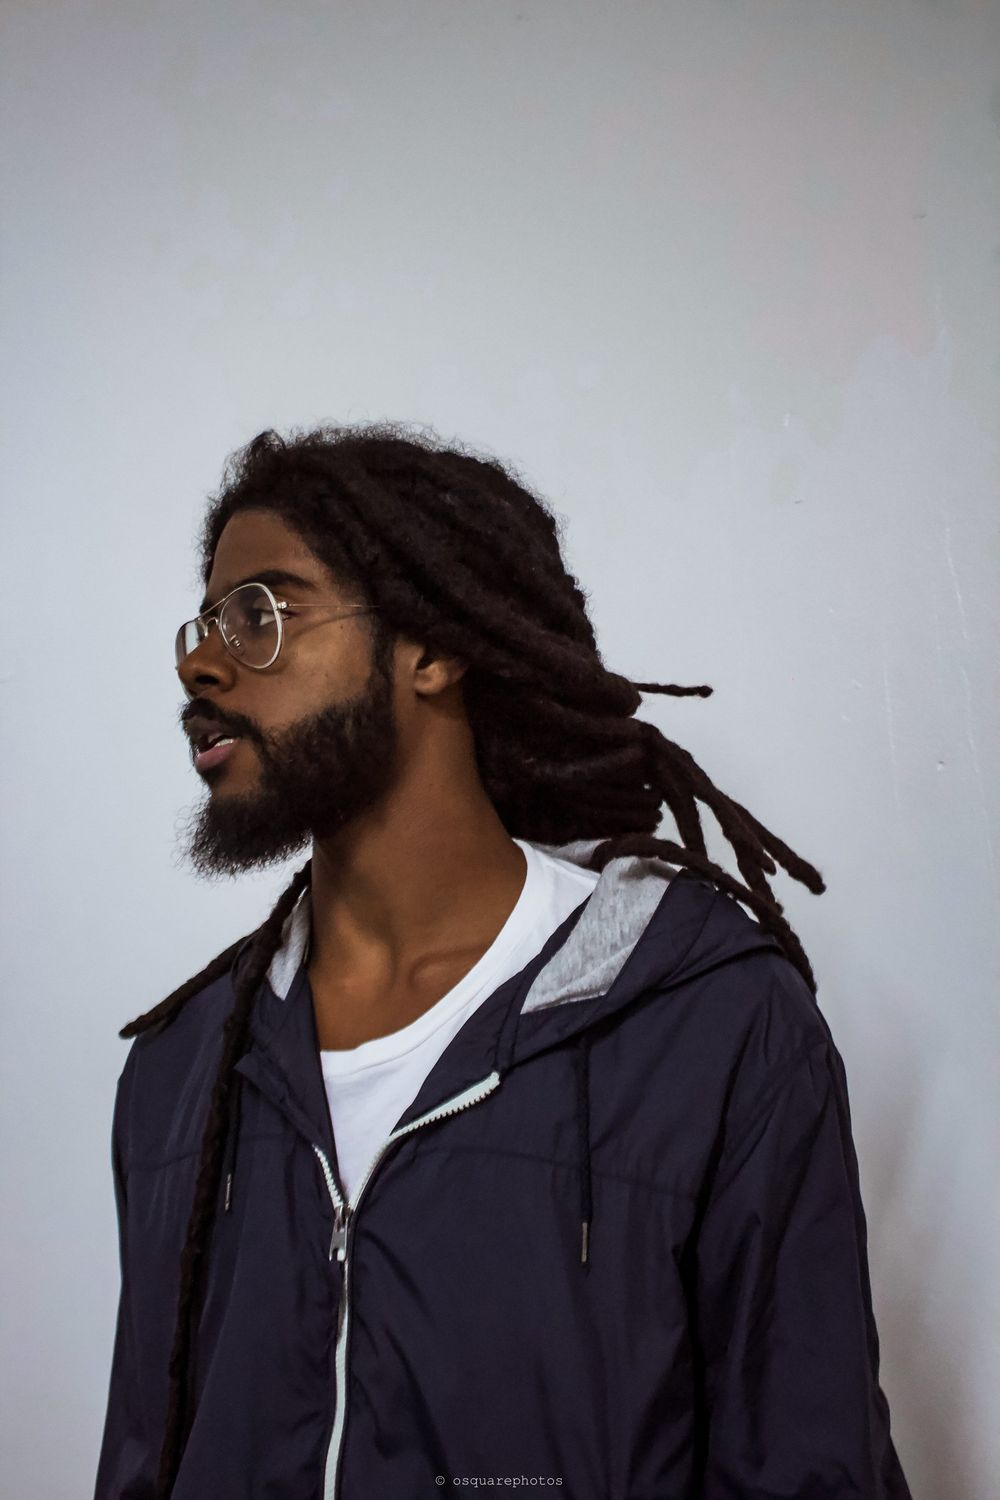 guy with dread poses for picture